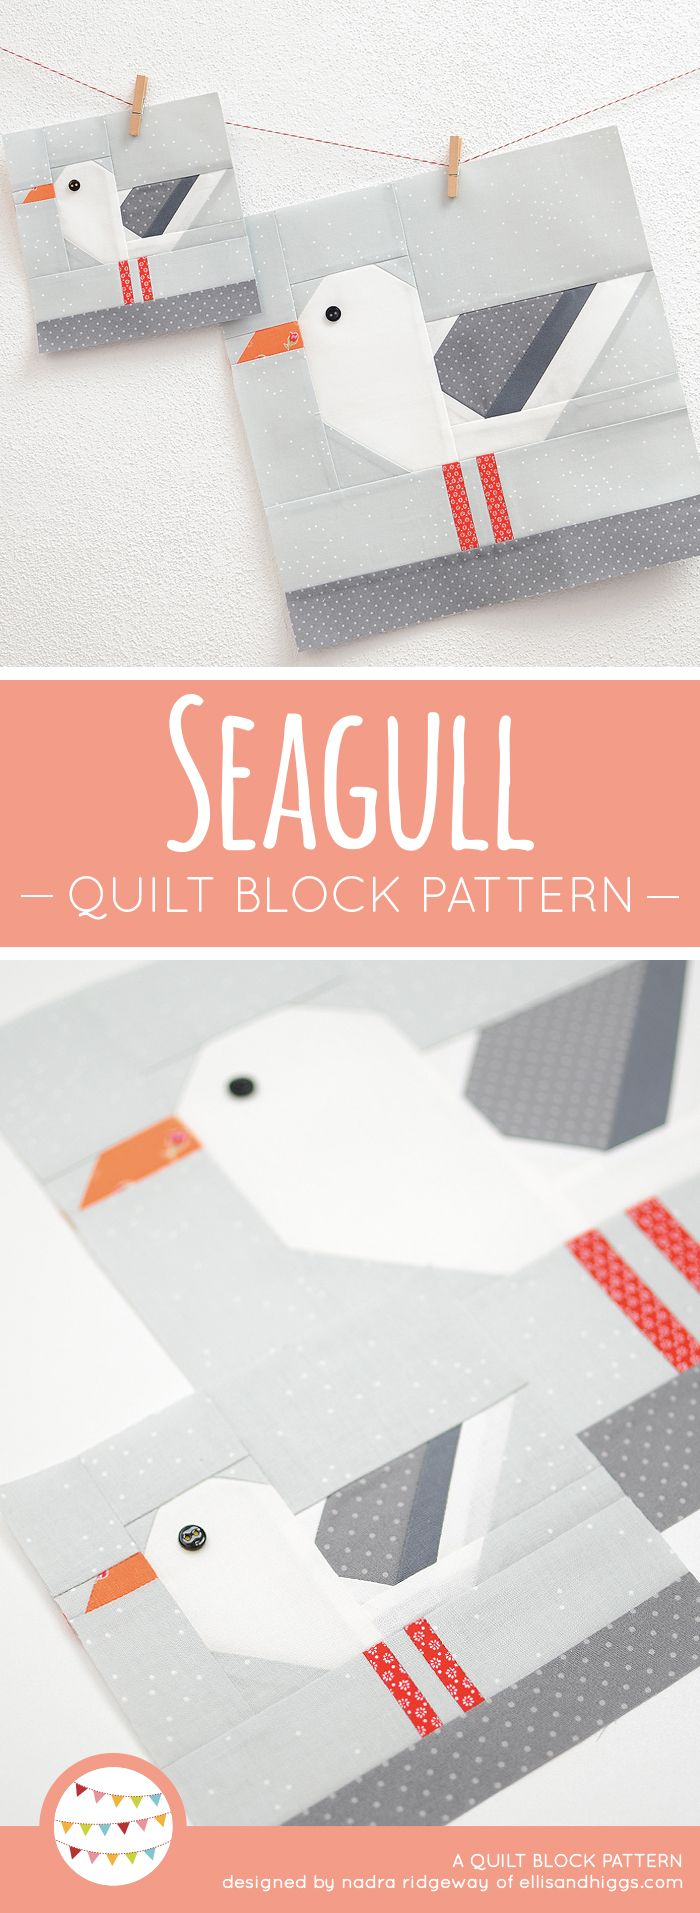 New Nautical Quilt Patterns: Seagull Quilt Block Pattern - ellis & higgs